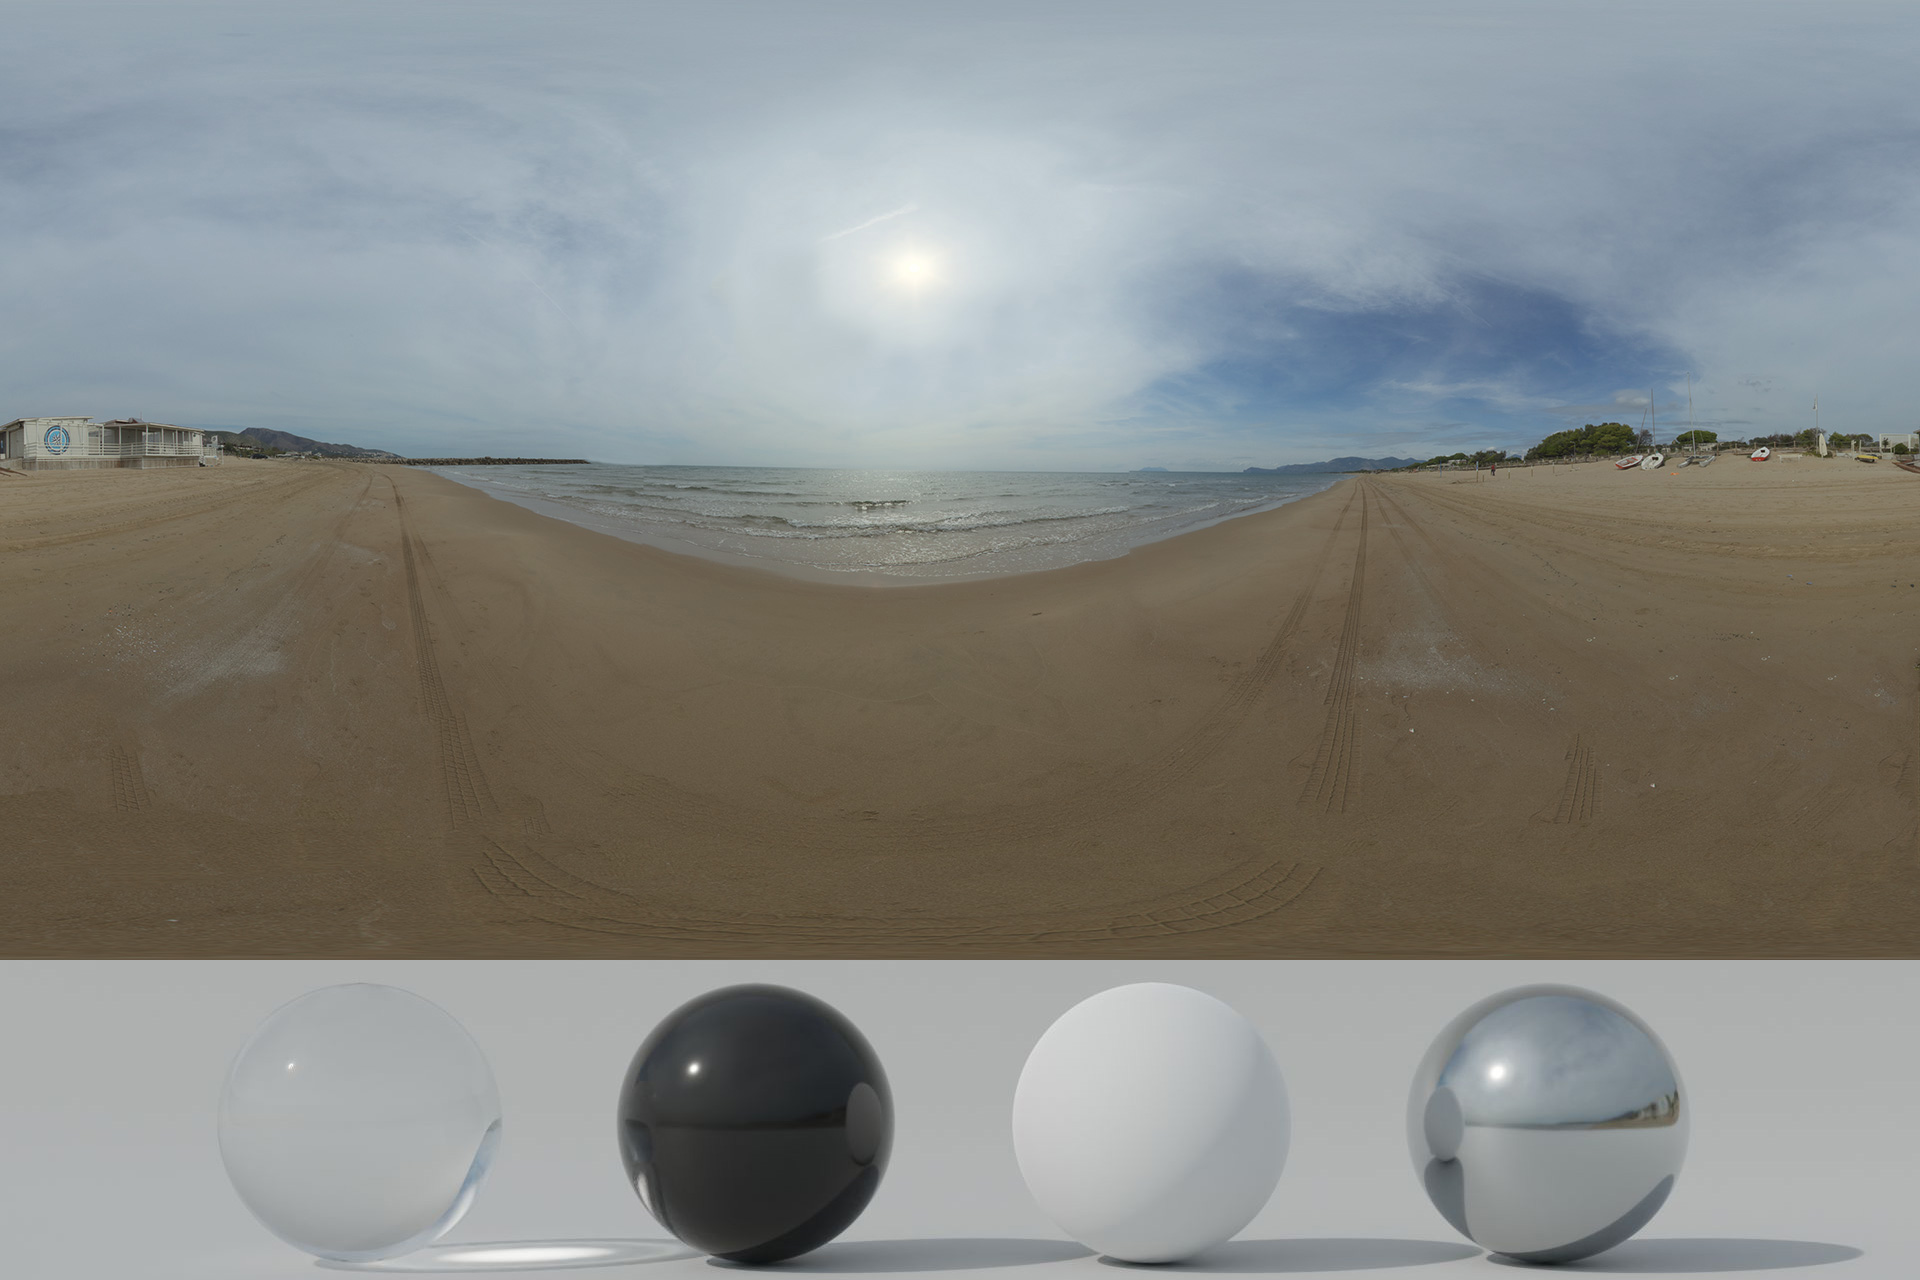 HDRi – Clouds and Sea